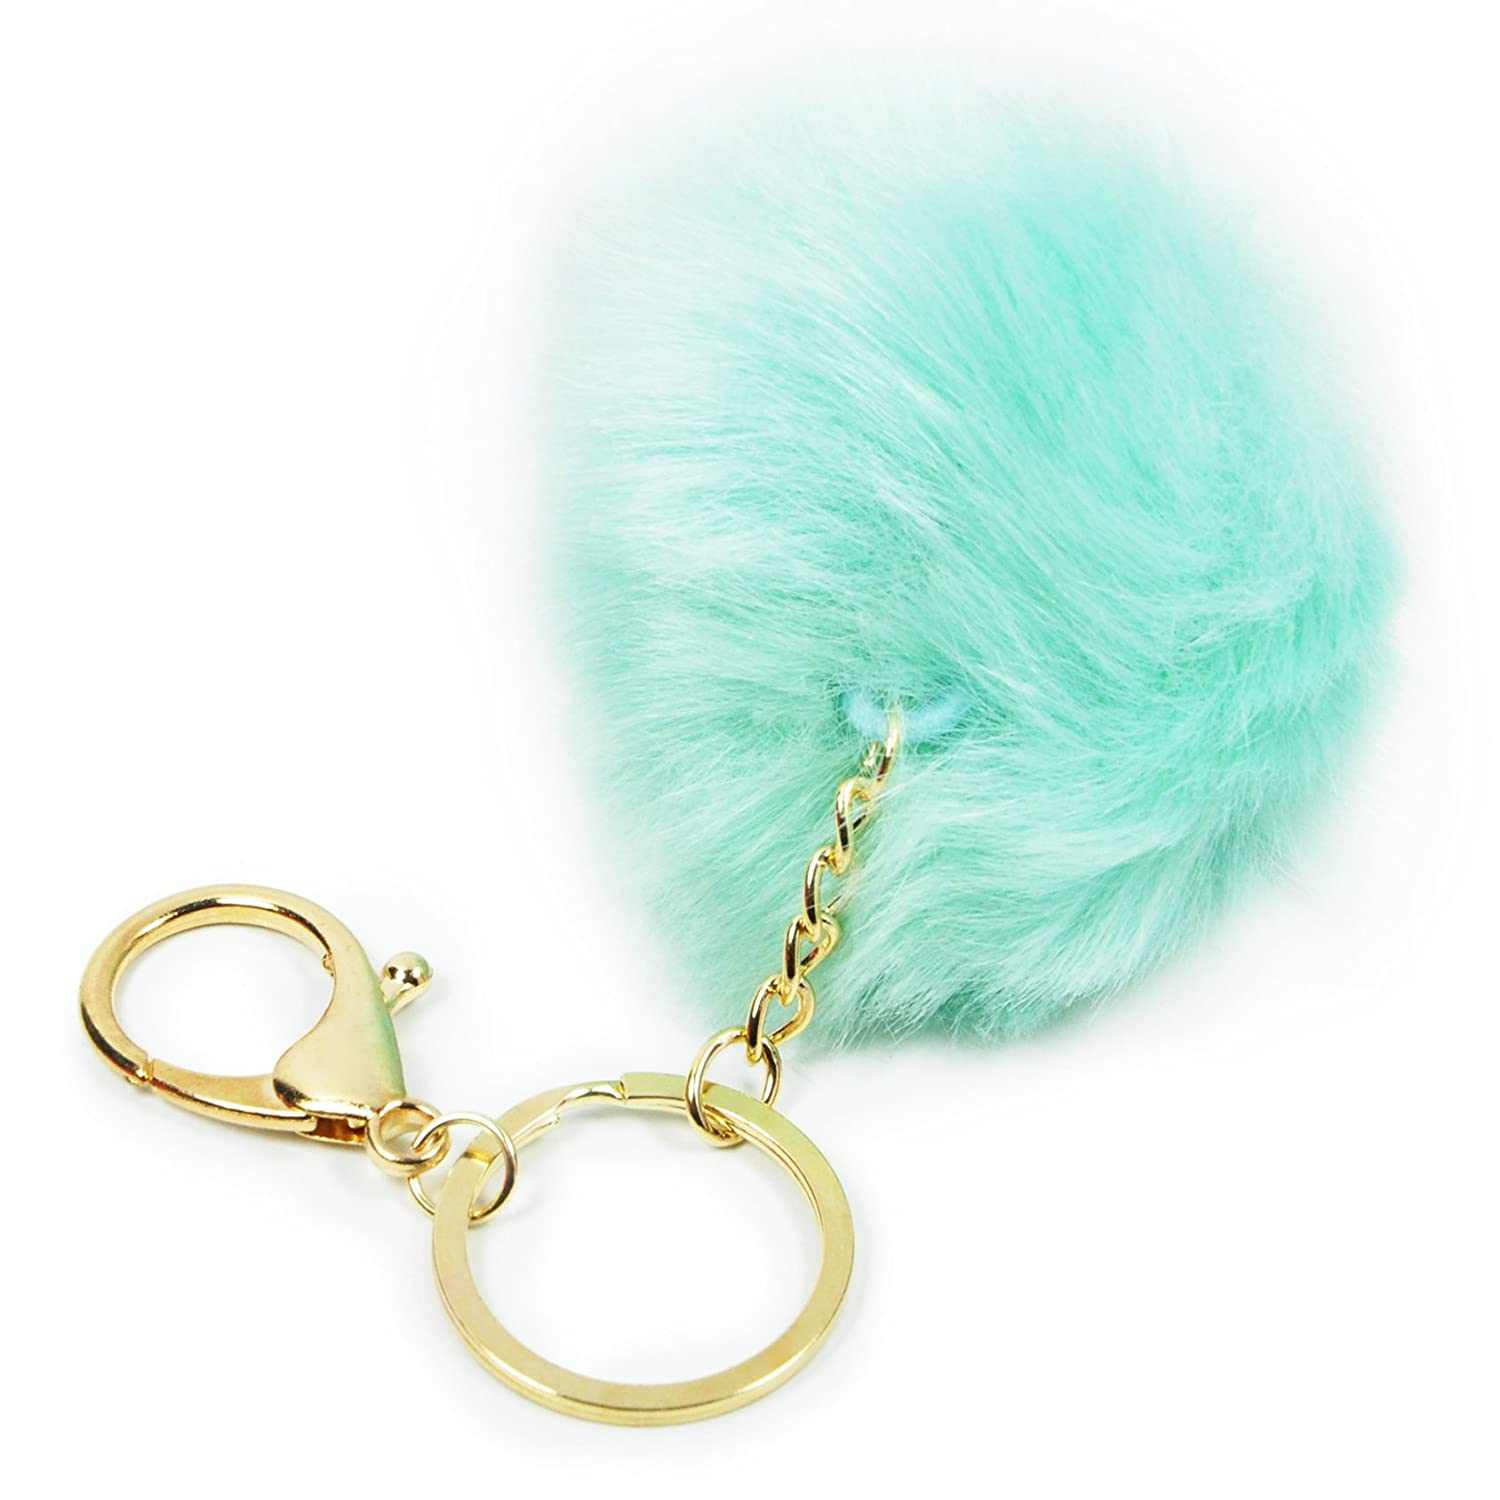 Plush Ball Key Chain For Car Key Ring Or Bags Light Blue